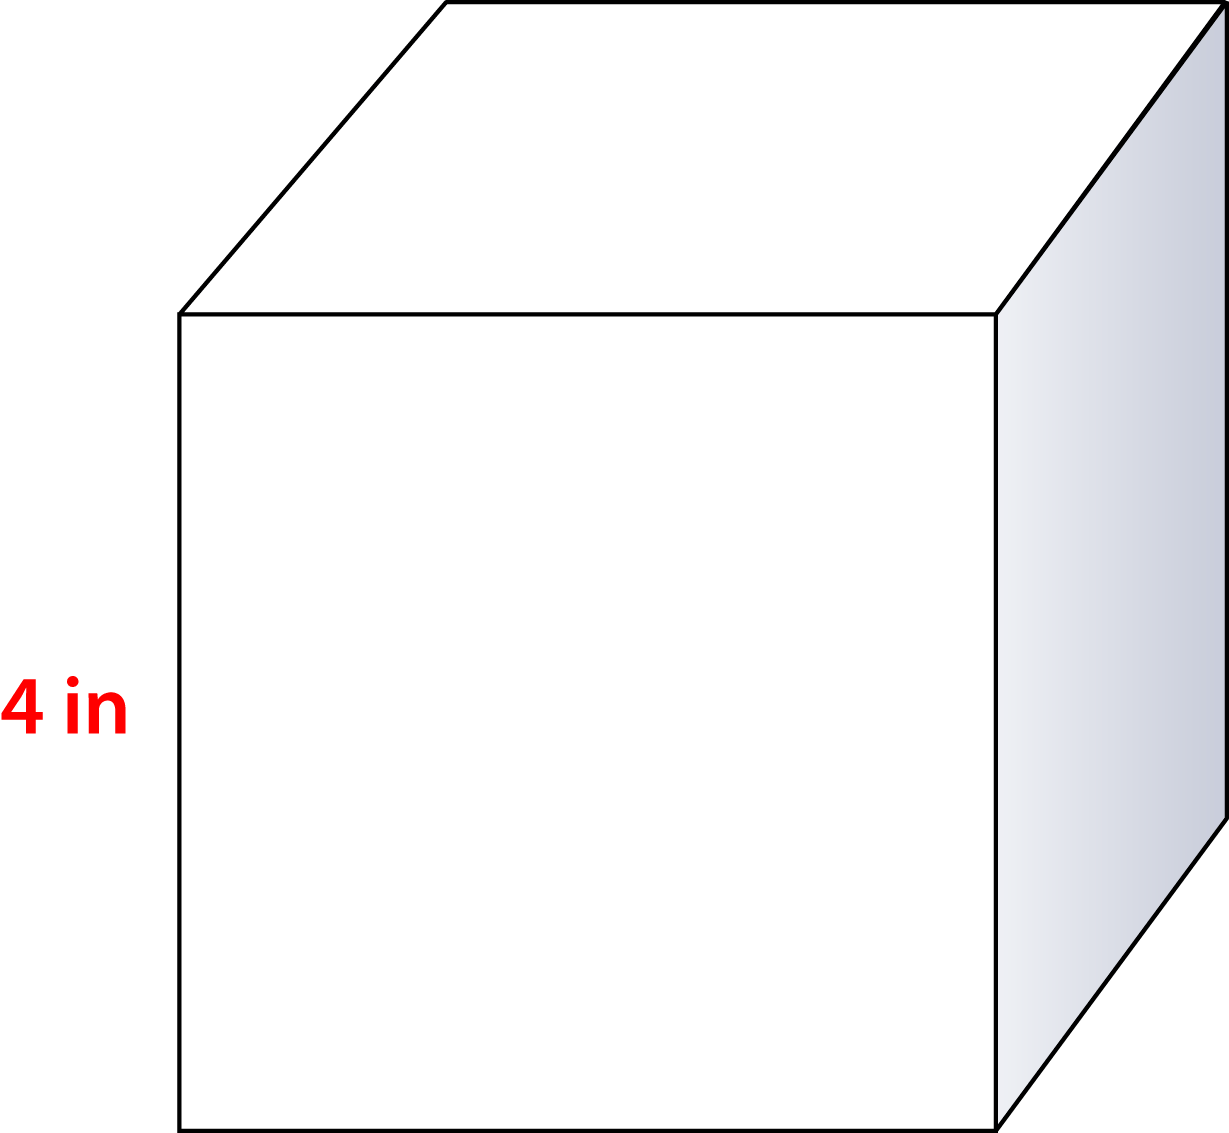 net diagram of triangular prism language arts plot surface area and volume prisms ck 12 foundation